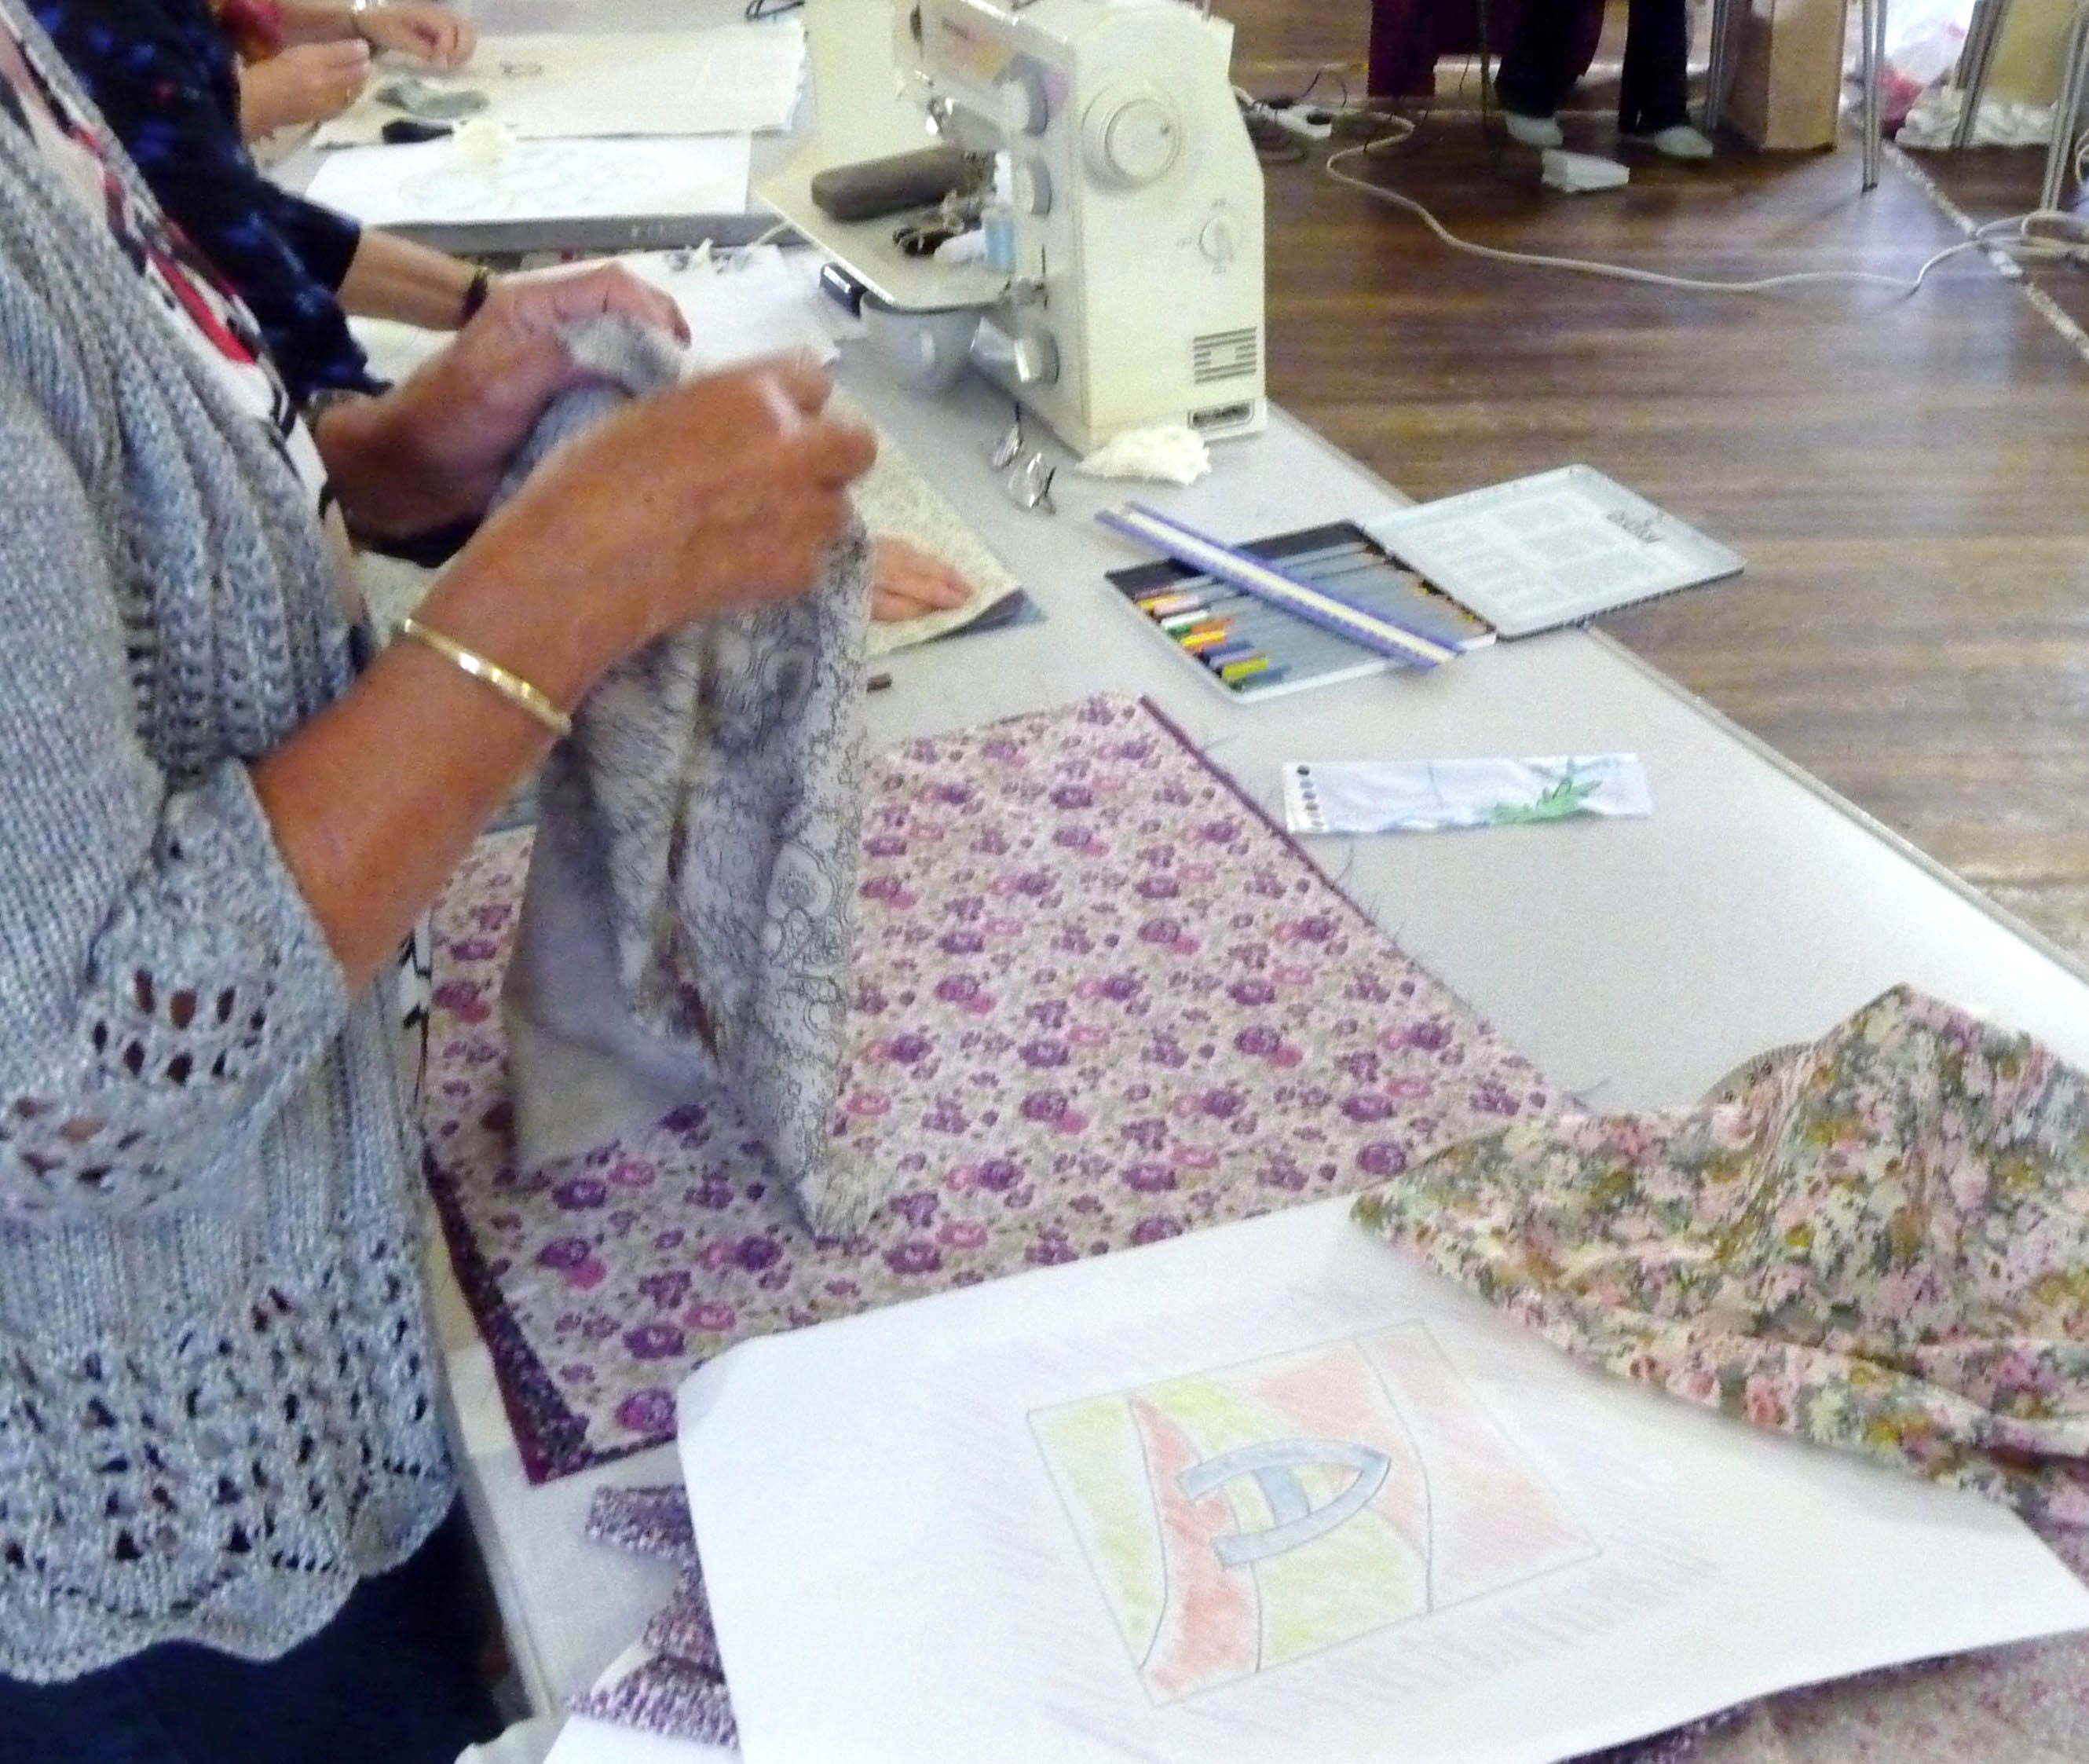 The pattern has been drawn, now it is time to choose the fabrics